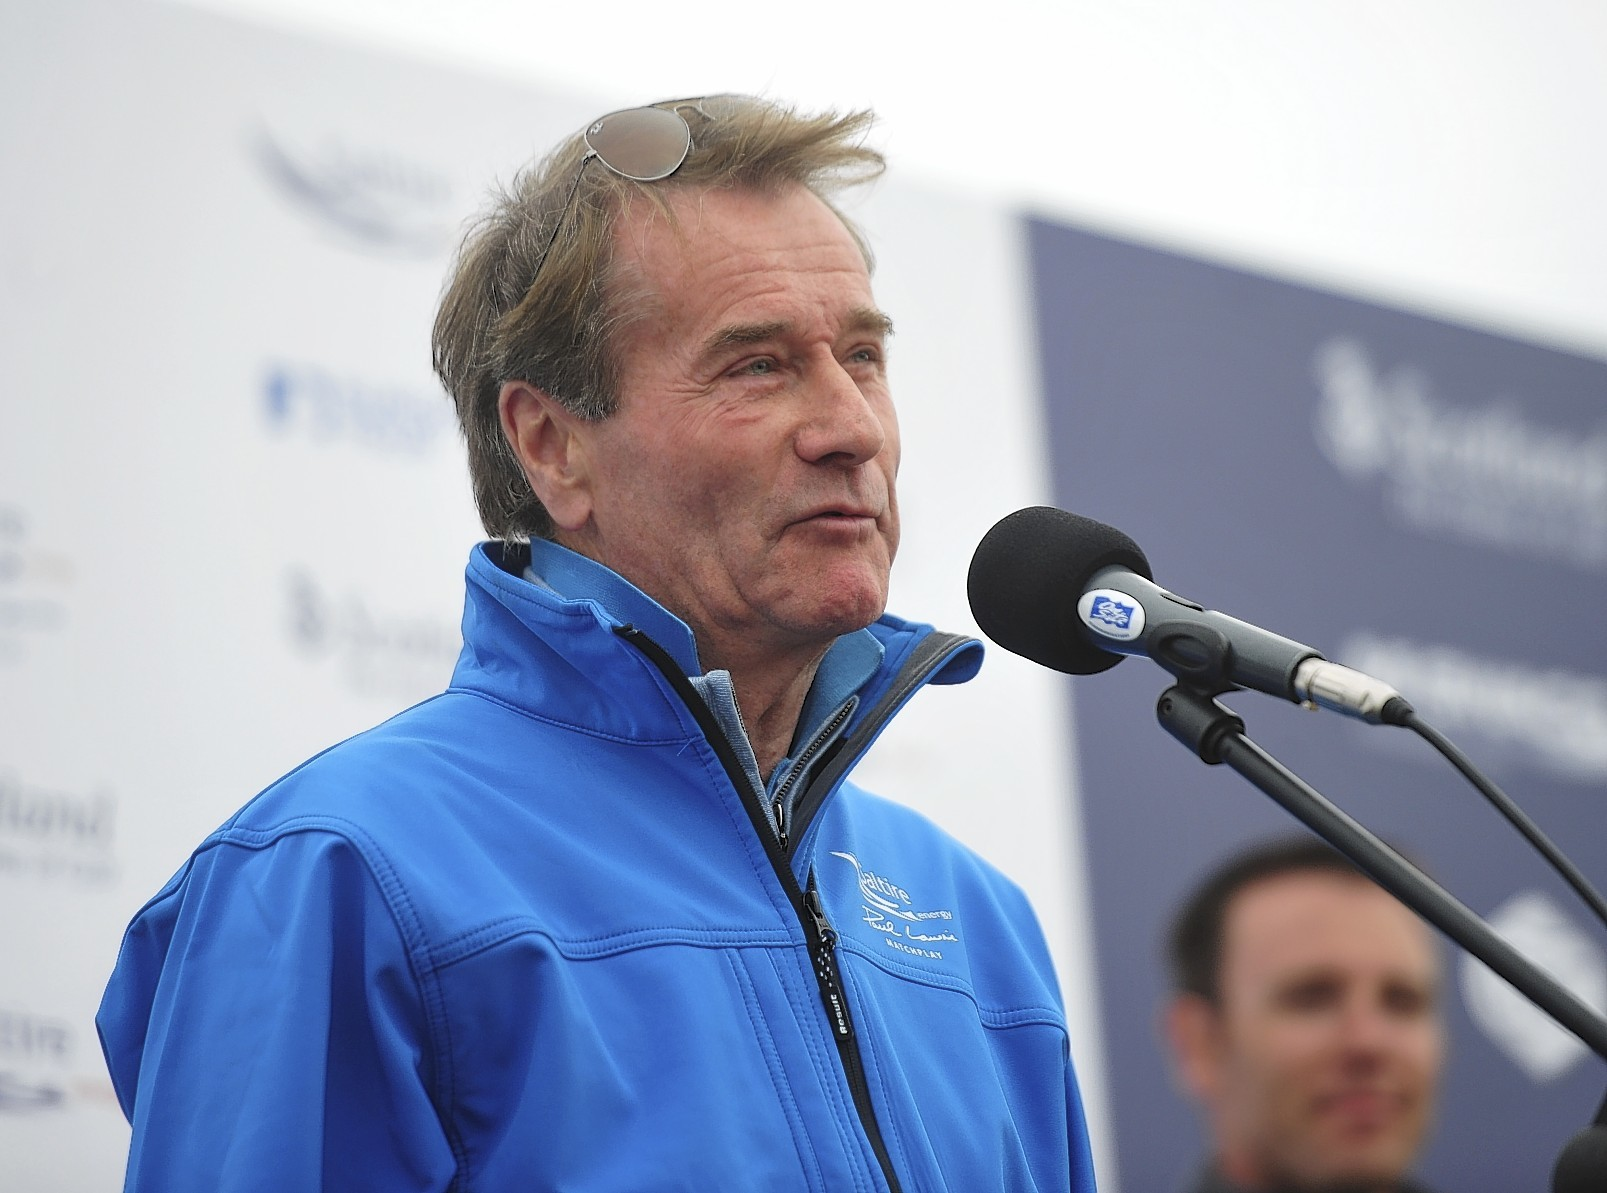 Mike Loggie, chief executive of Saltire Energy, speaking at the Paul Lawrie Tournament final at Murcar Links Golf Course in August 2015.